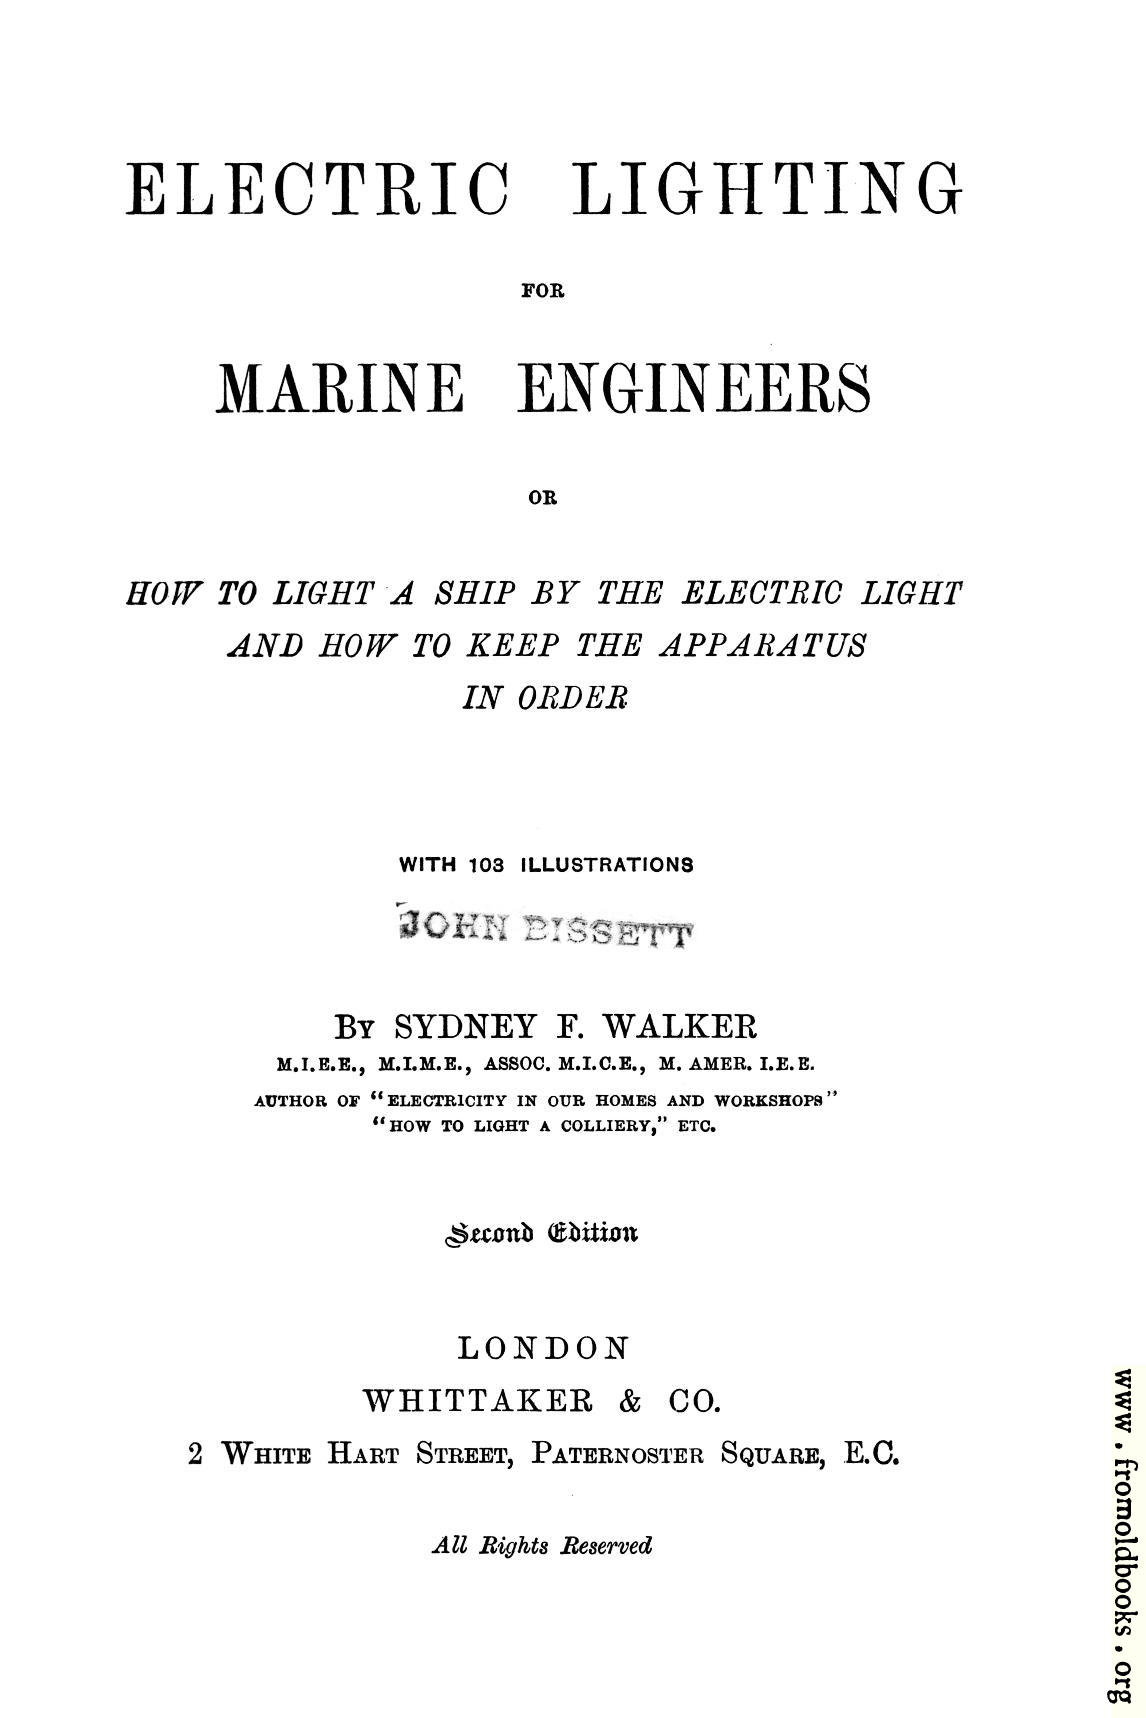 [Picture: Title Page from Electric Lighting for Marine Engineers]